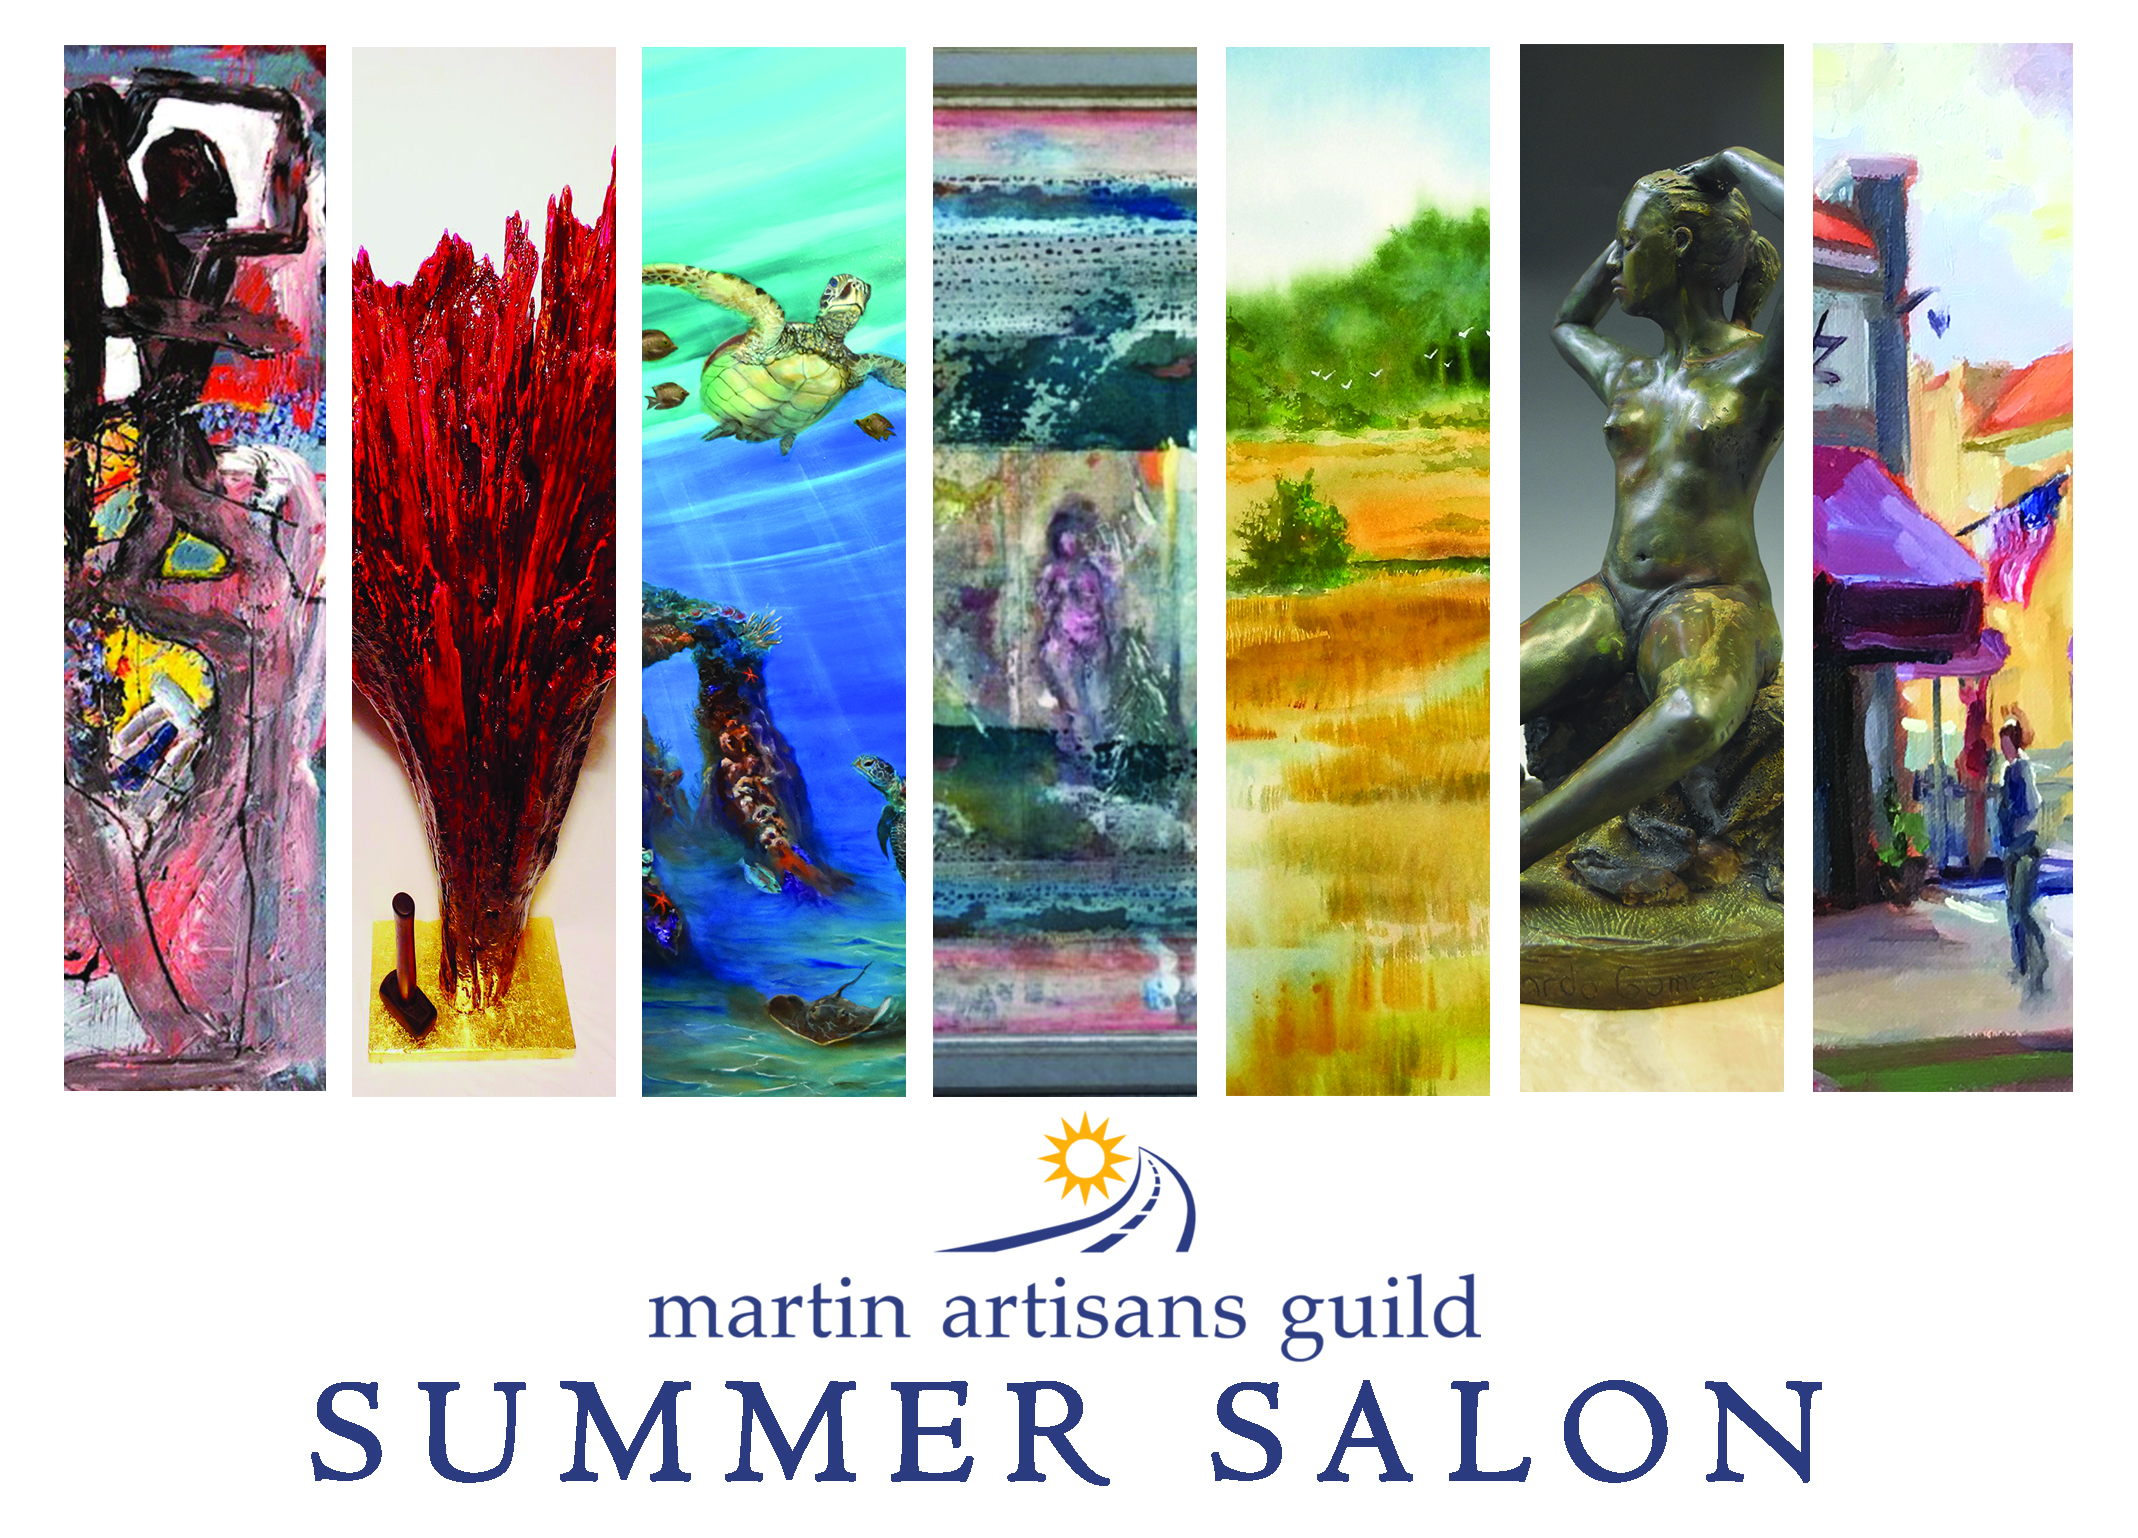 Martin Artisans Guild Summer Salon